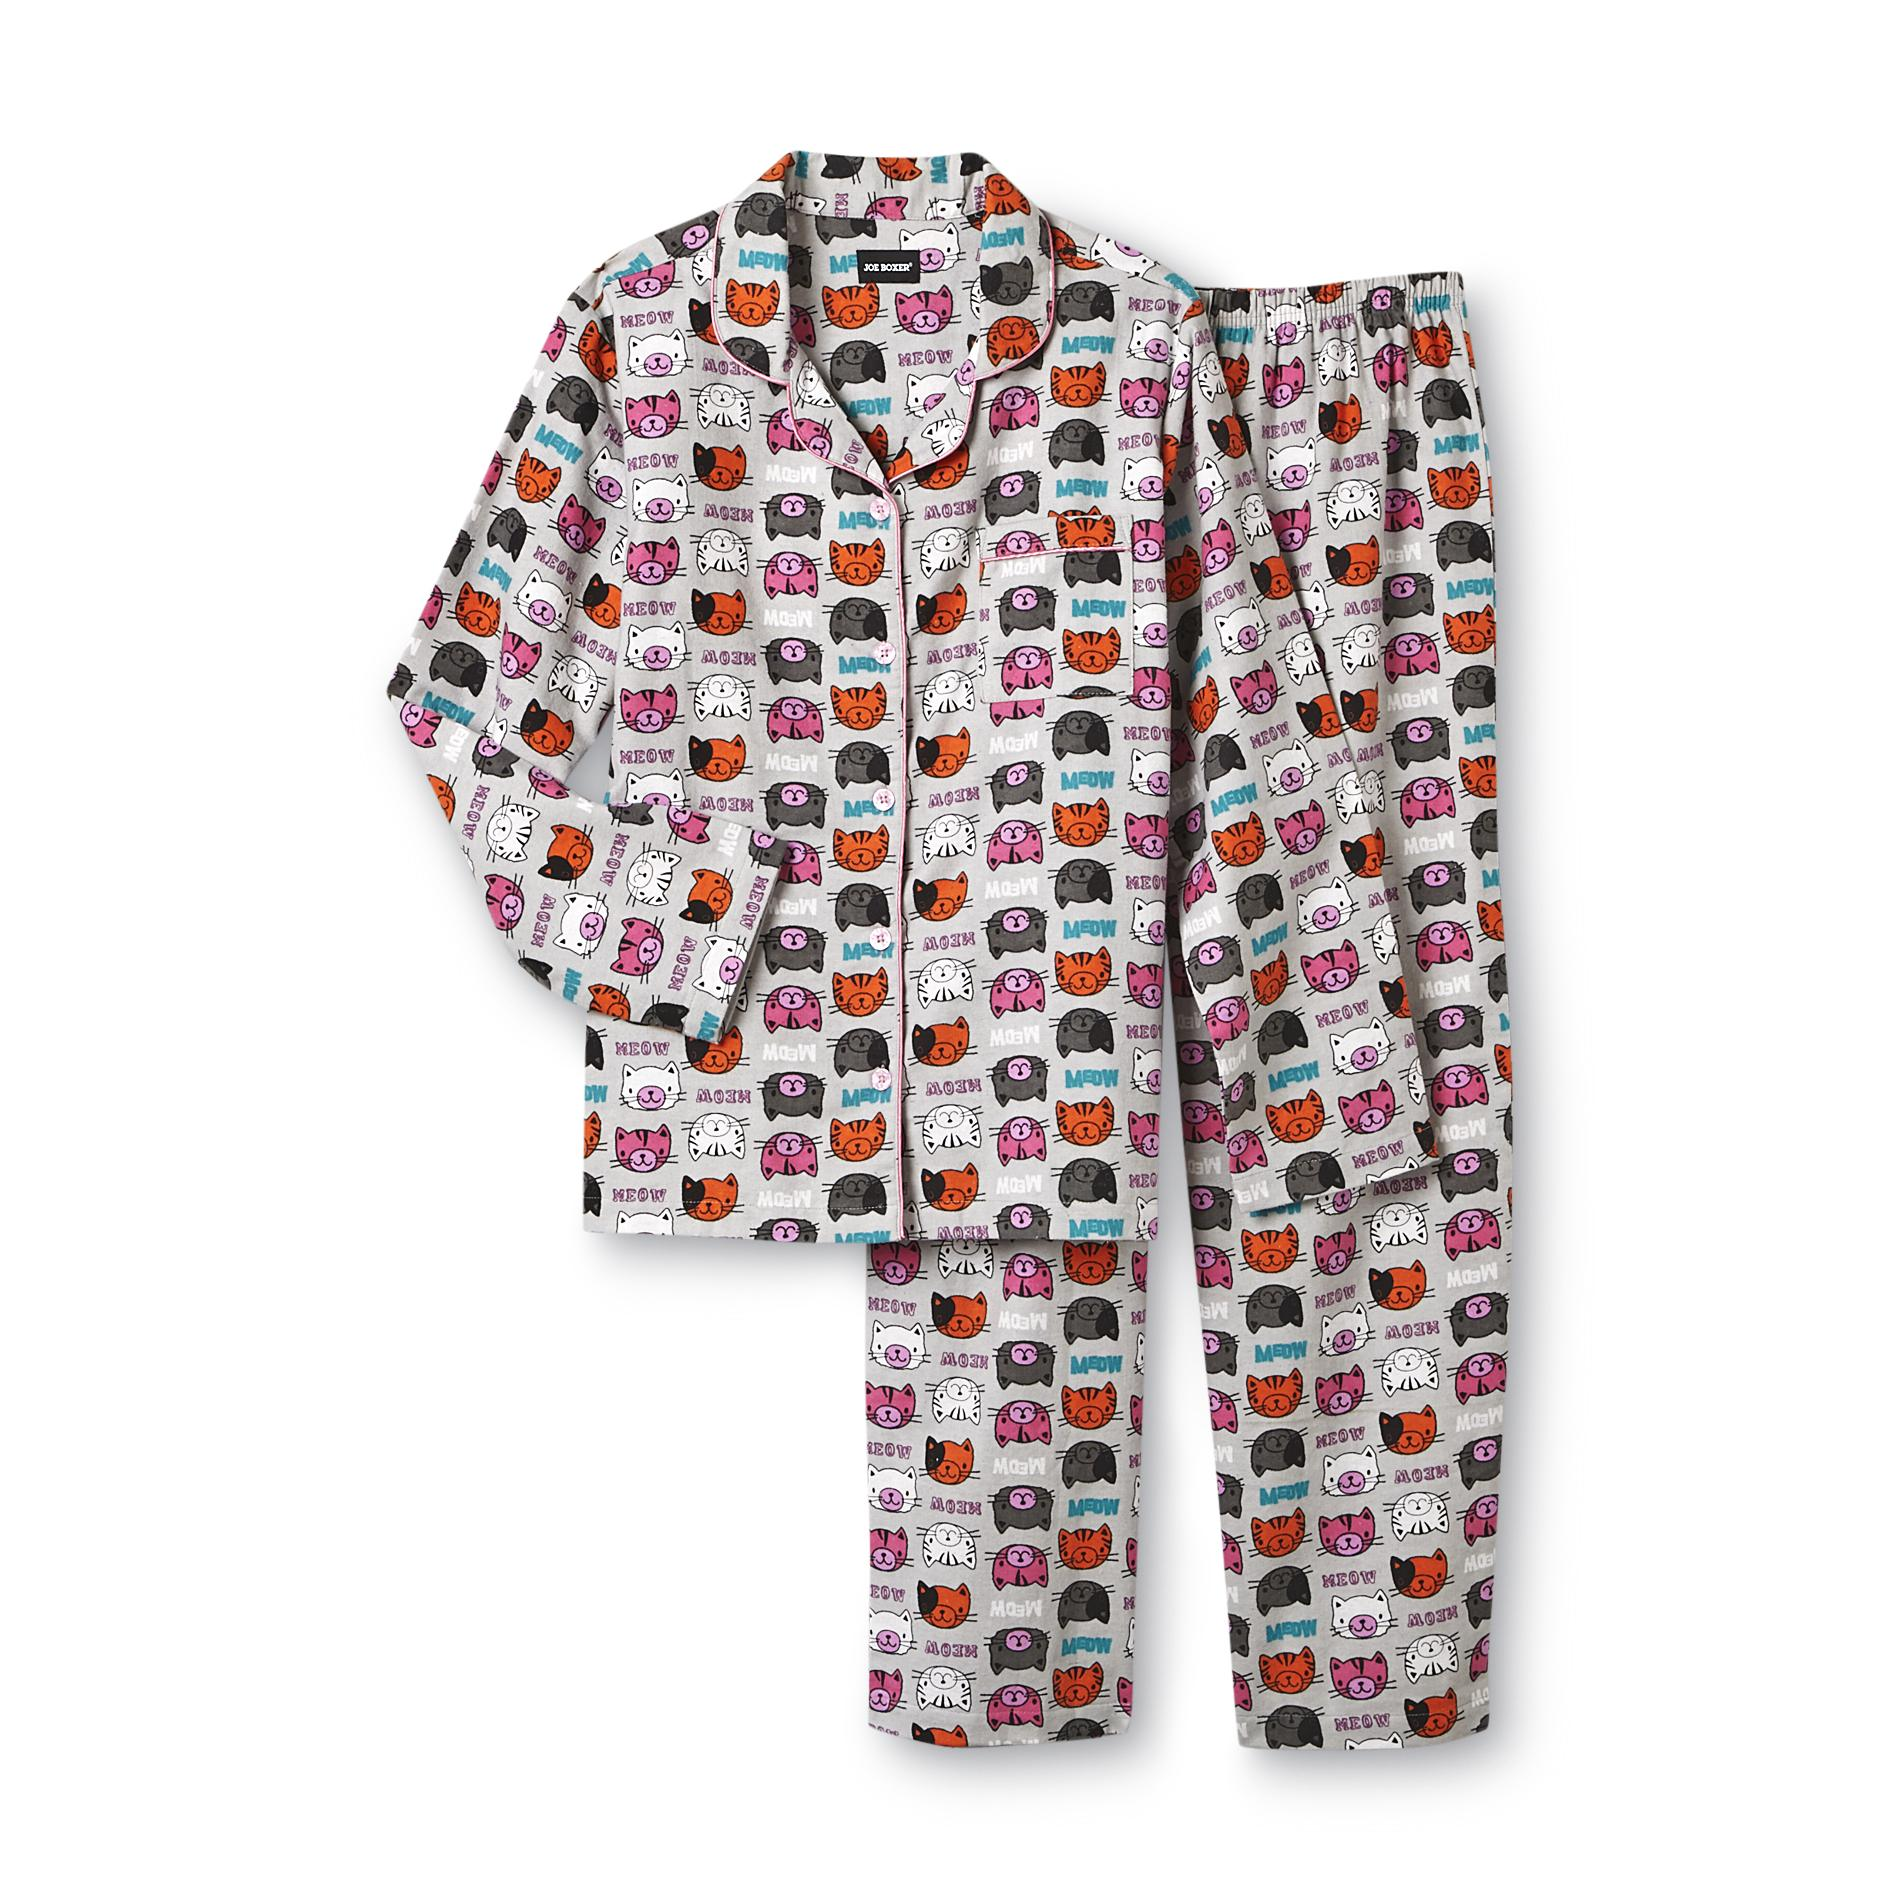 Joe Boxer Women's 2-Piece Flannel Pajama Set - Kitty at Kmart.com